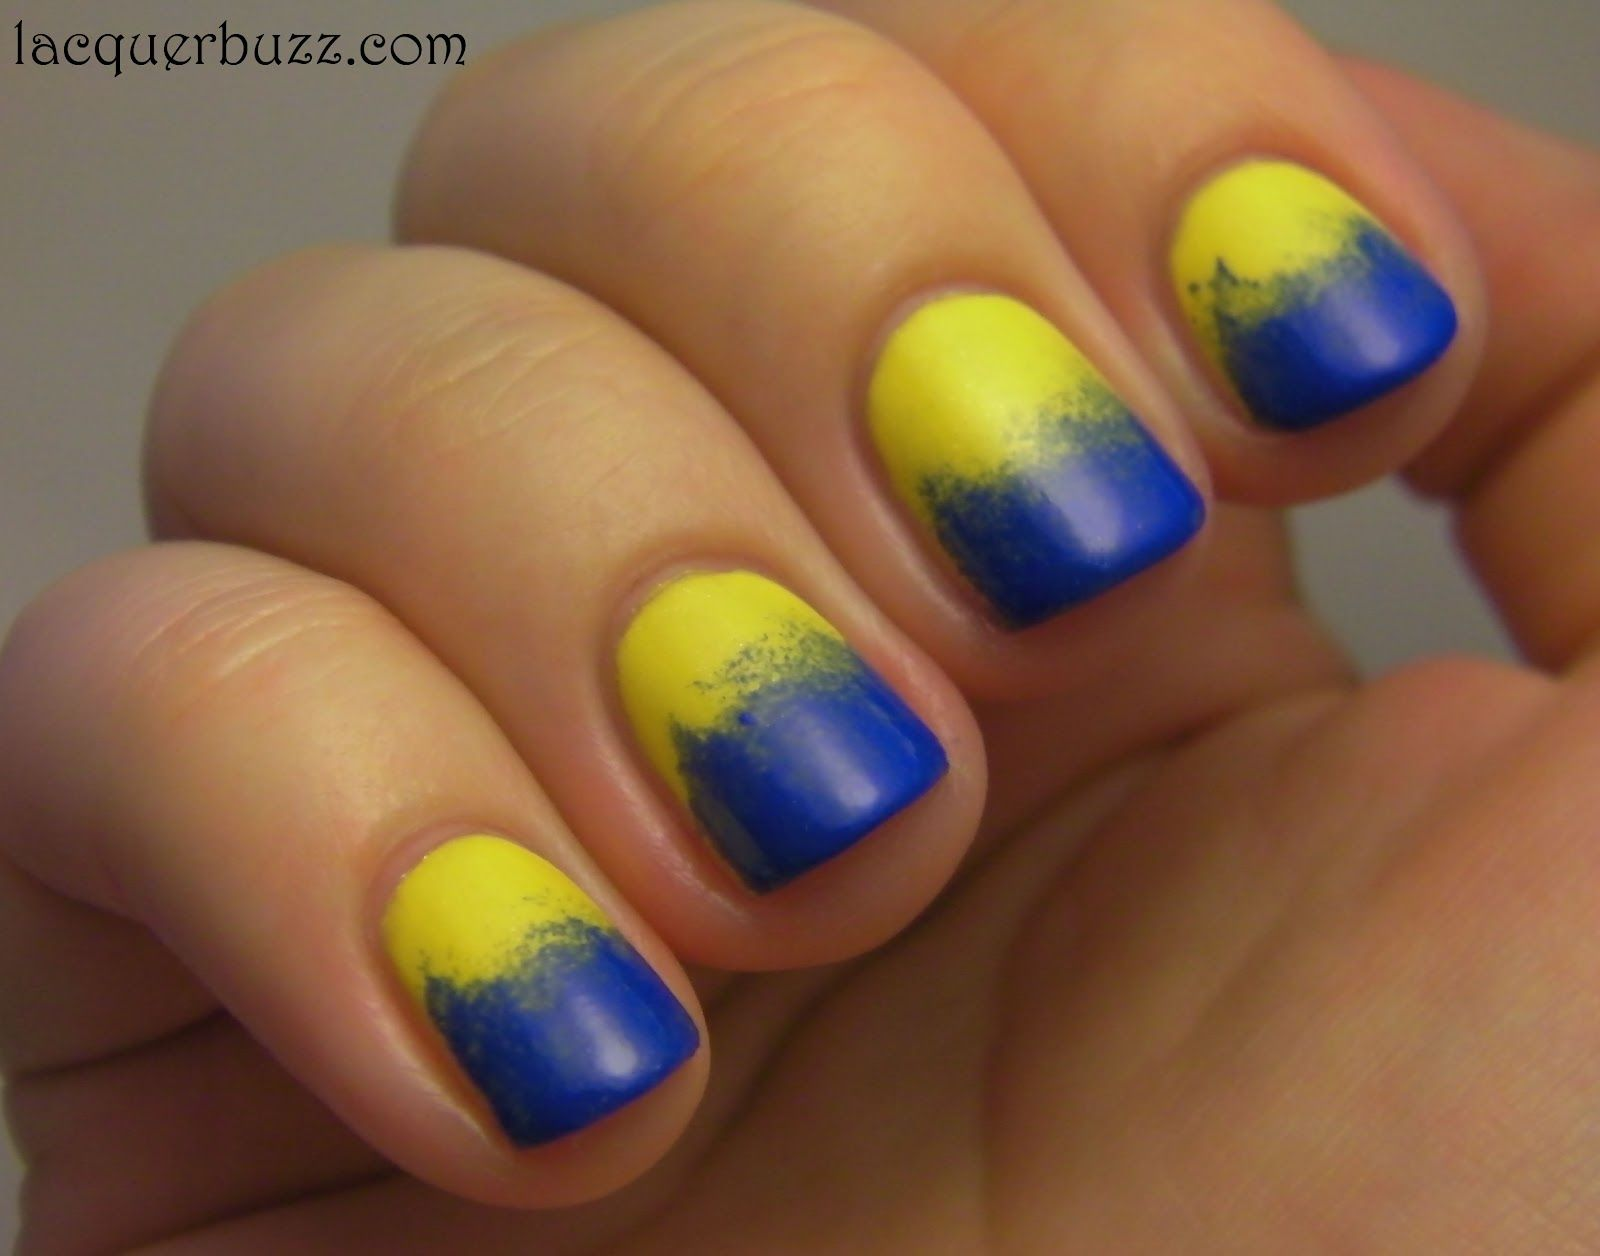 Lacquer Buzz Blue Ombre Nails Yellow Nails Ombre Nails